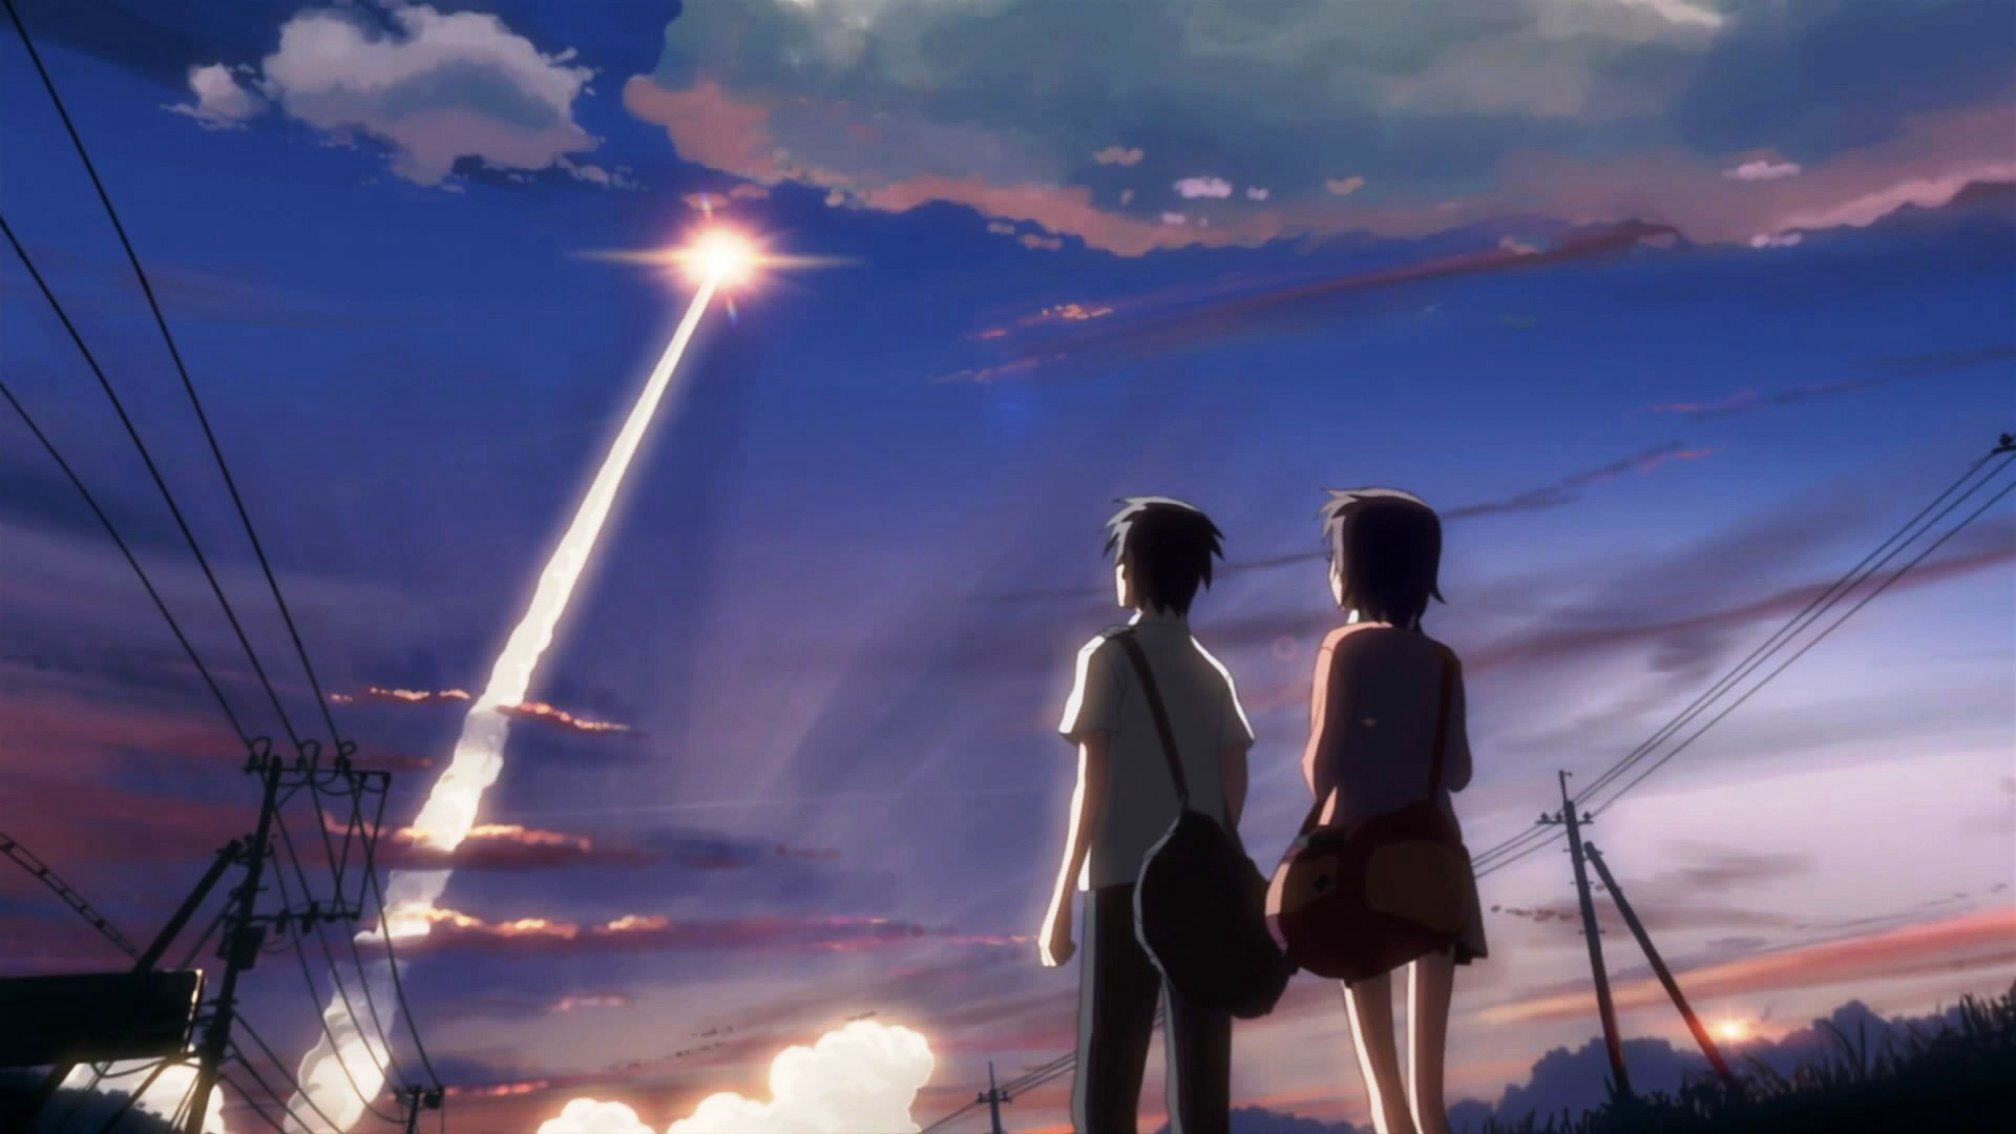 5 Centimeters Per Second Anime, Paisajes anime y Fondos